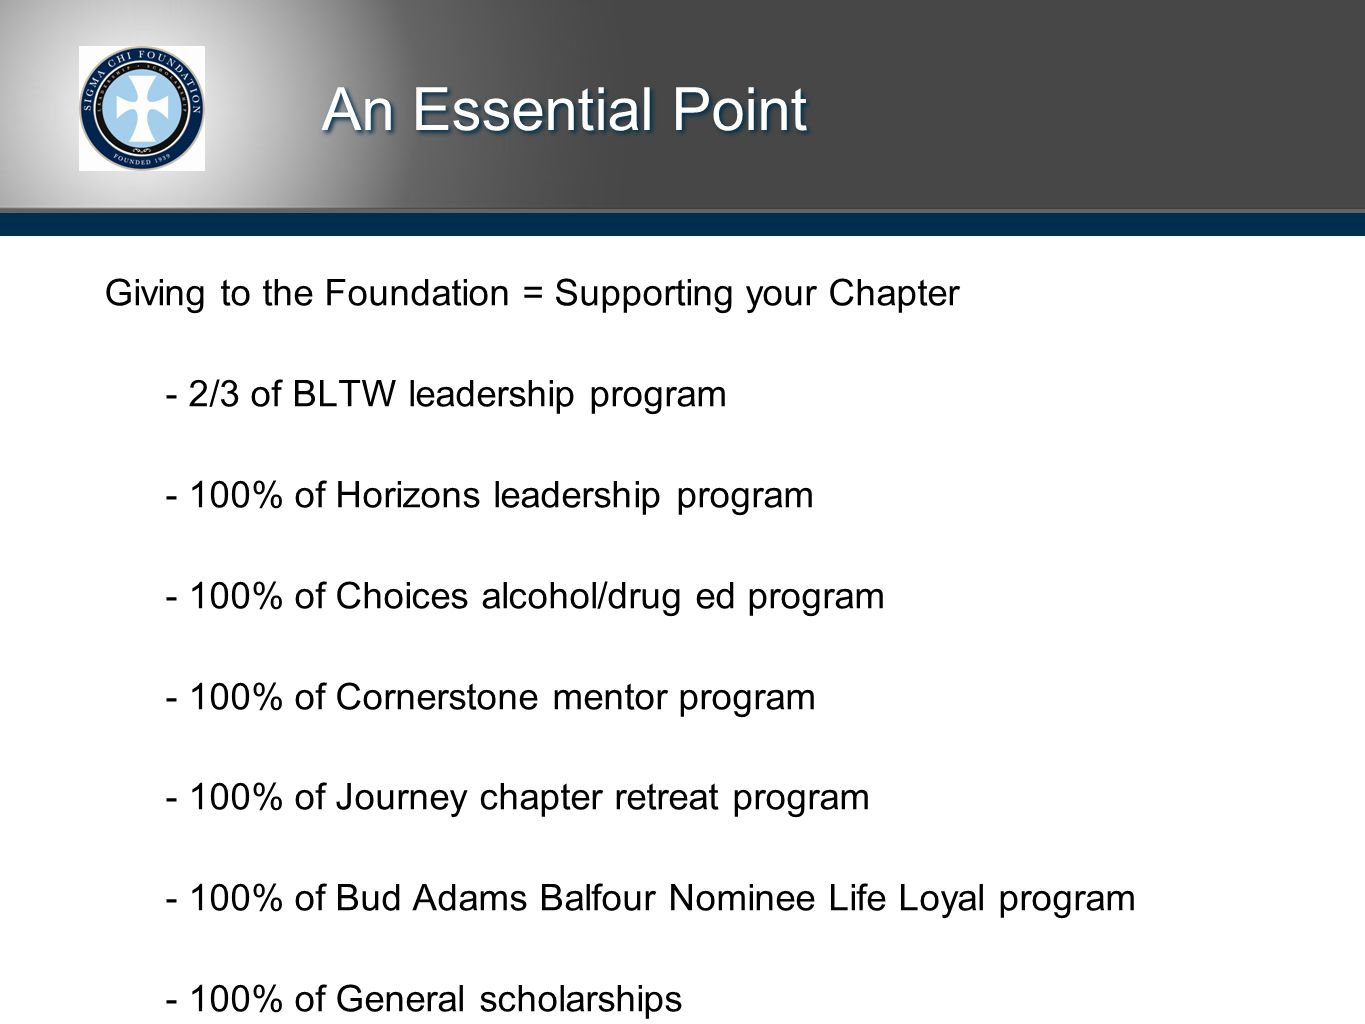 An Essential Point Giving to the Foundation = Supporting your Chapter - 2/3 of BLTW leadership program - 100% of Horizons leadership program - 100% of Choices alcohol/drug ed program - 100% of Cornerstone mentor program - 100% of Journey chapter retreat program - 100% of Bud Adams Balfour Nominee Life Loyal program - 100% of General scholarships Total support approaches $10,000/chapter/year